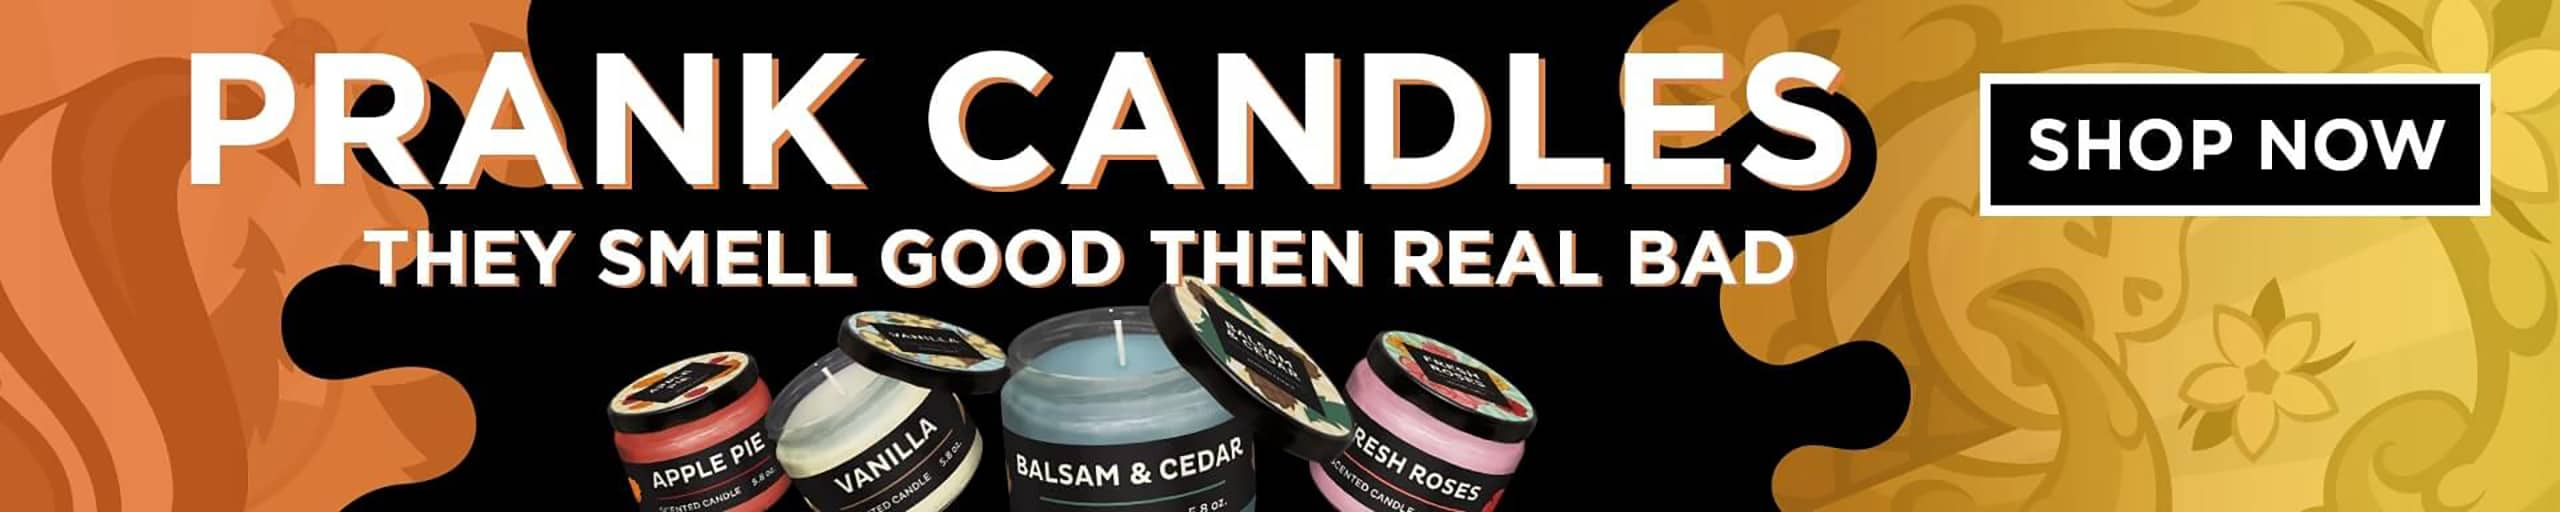 good to bad scented prank candles